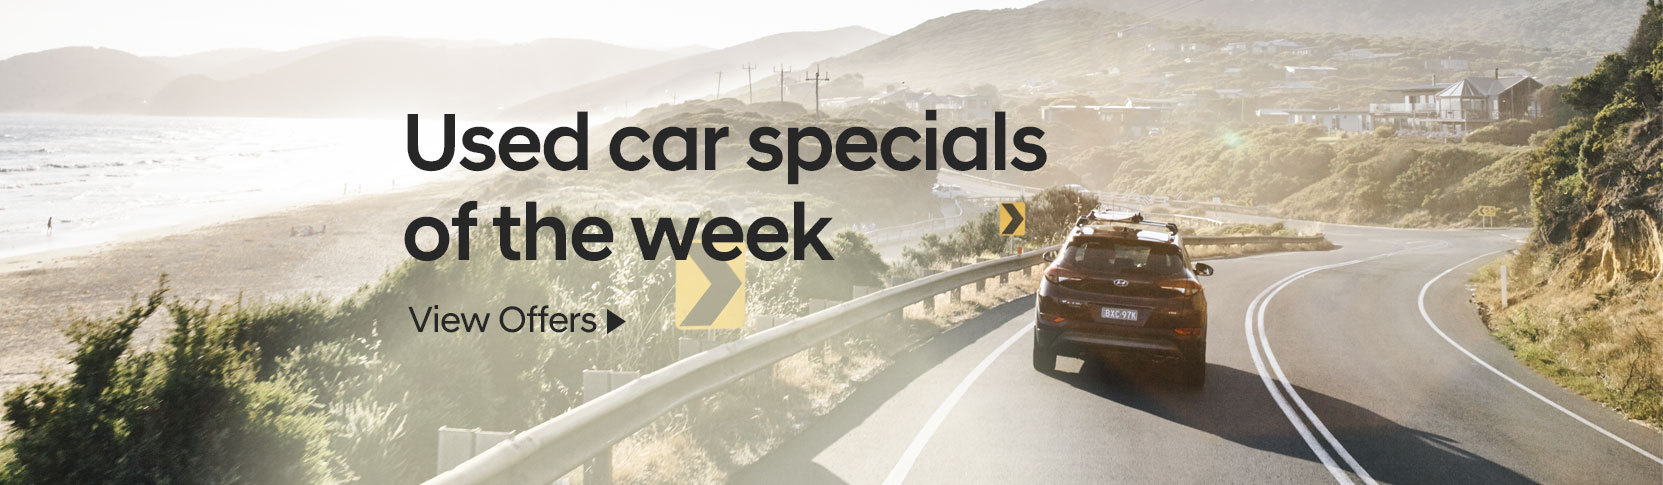 Used Car Specials of the Week